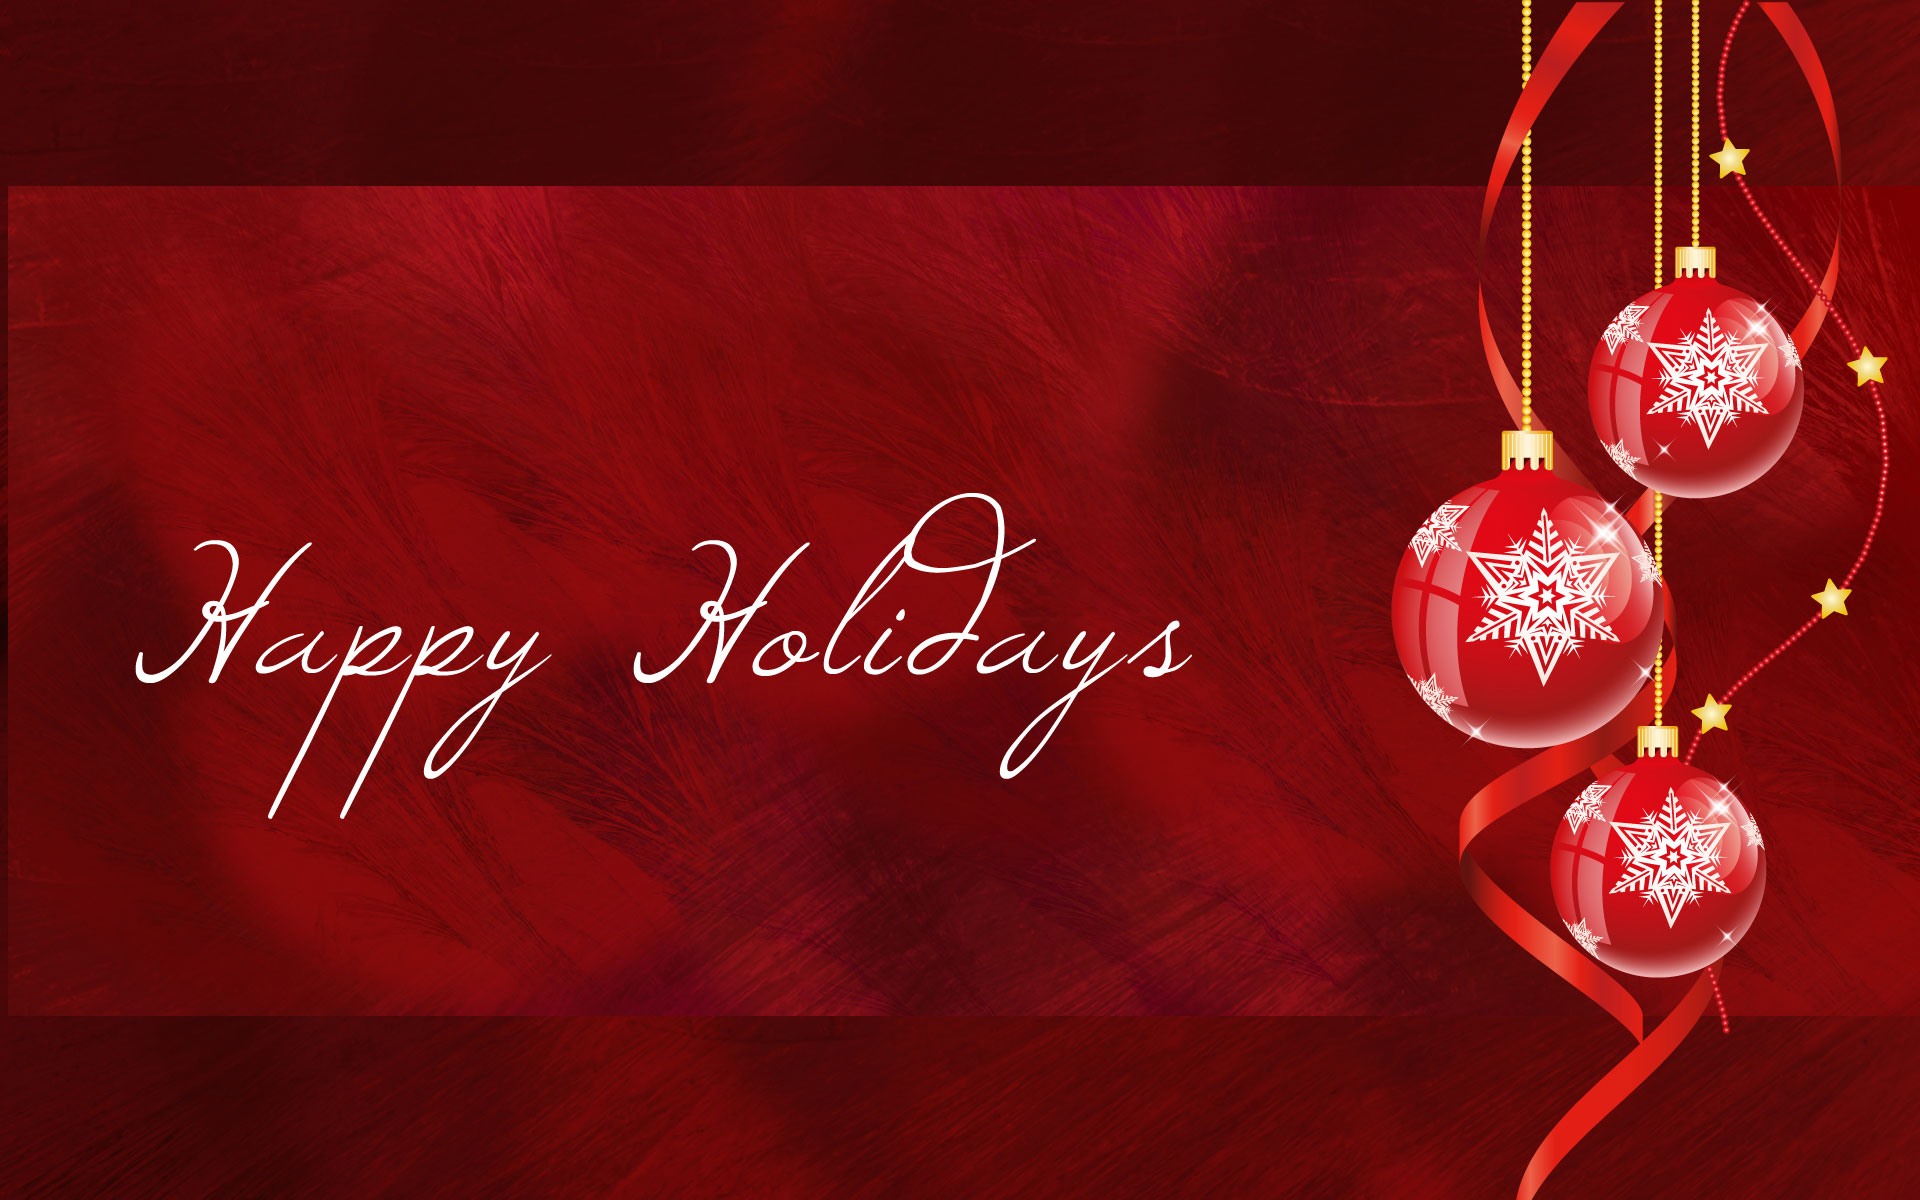 Happy Holidays. | pgcps mess - Reform Sasscer without delay.